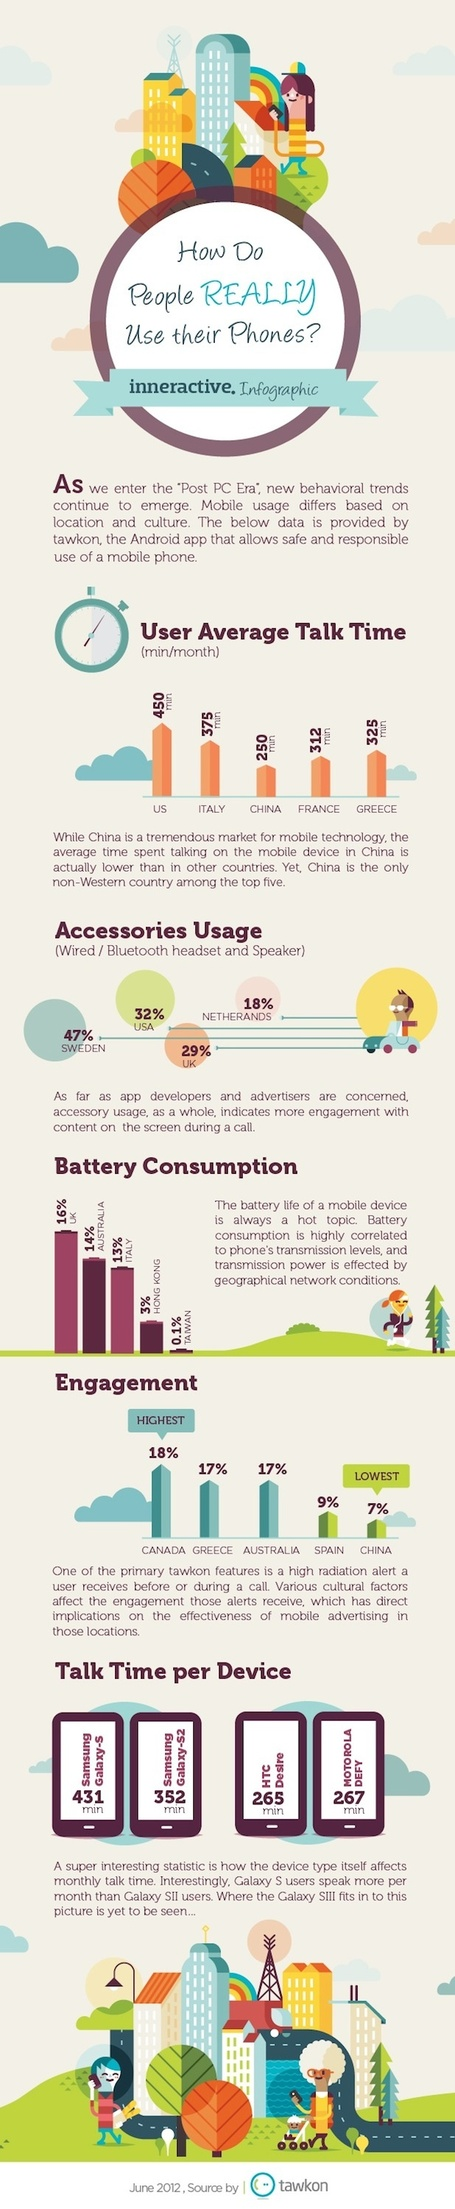 How Android Phone Owners Use Their Devices [INFOGRAPHIC] | Android | Scoop.it